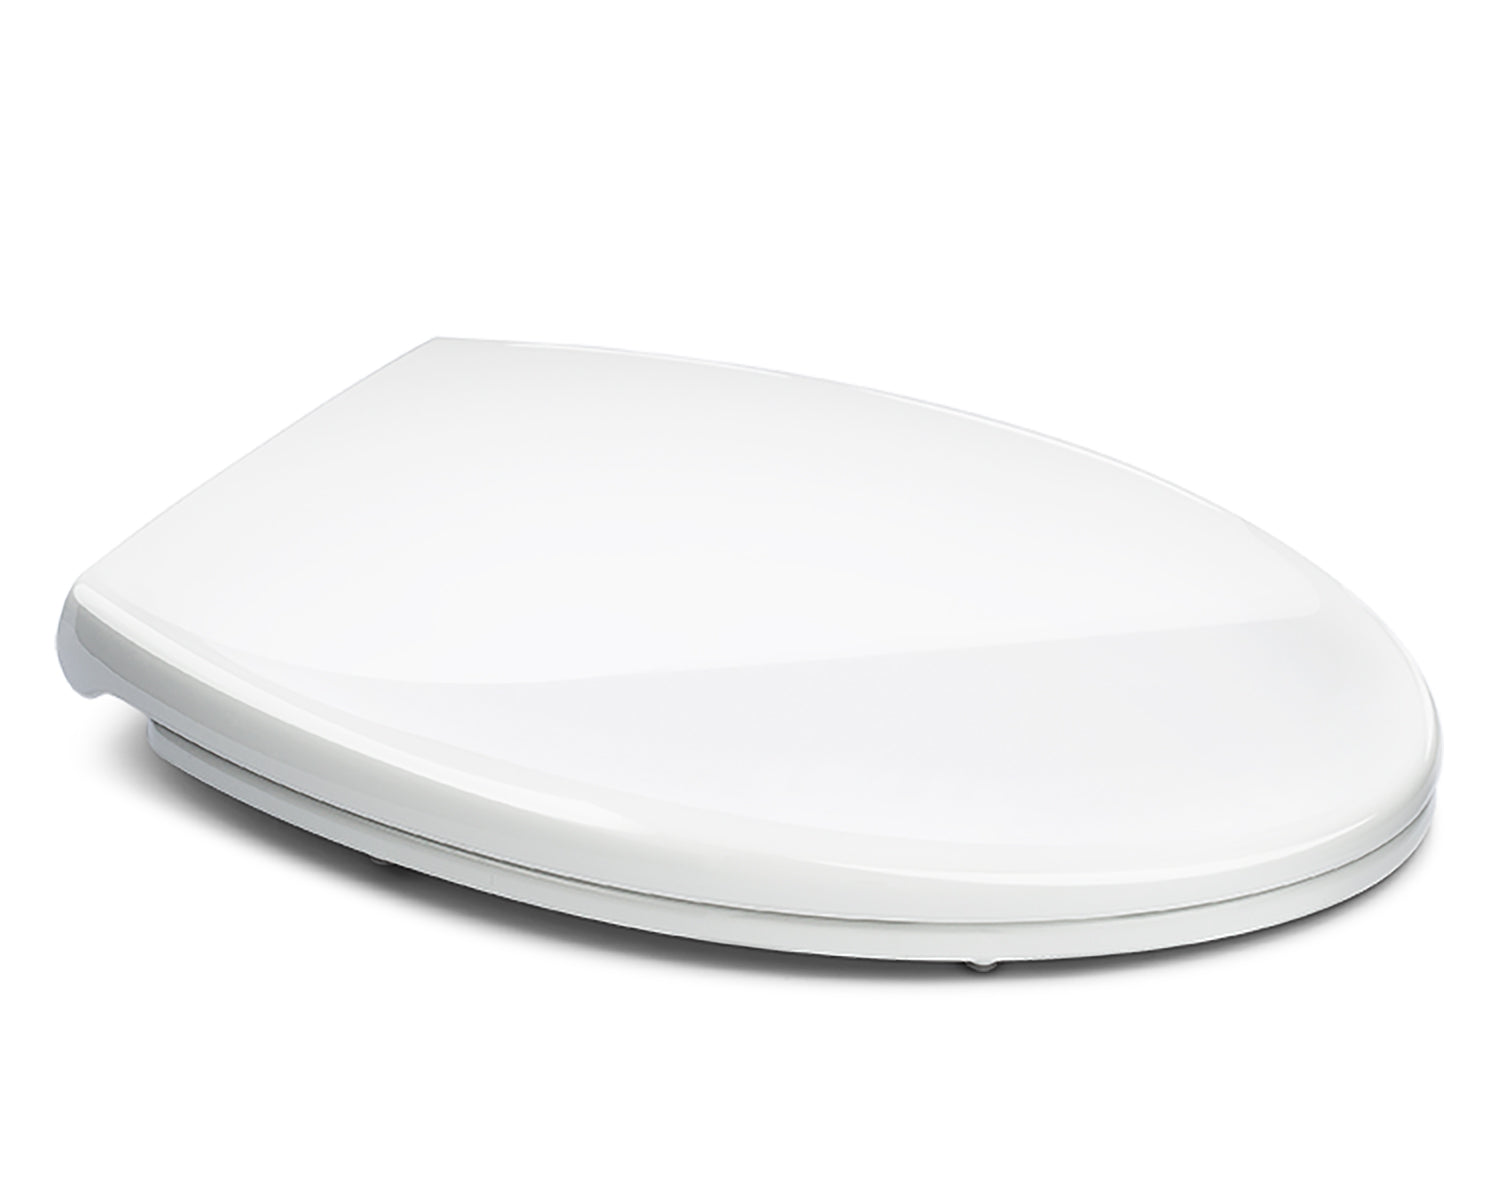 Peachy Superior Elongated Toilet Seat With Cover White Forskolin Free Trial Chair Design Images Forskolin Free Trialorg